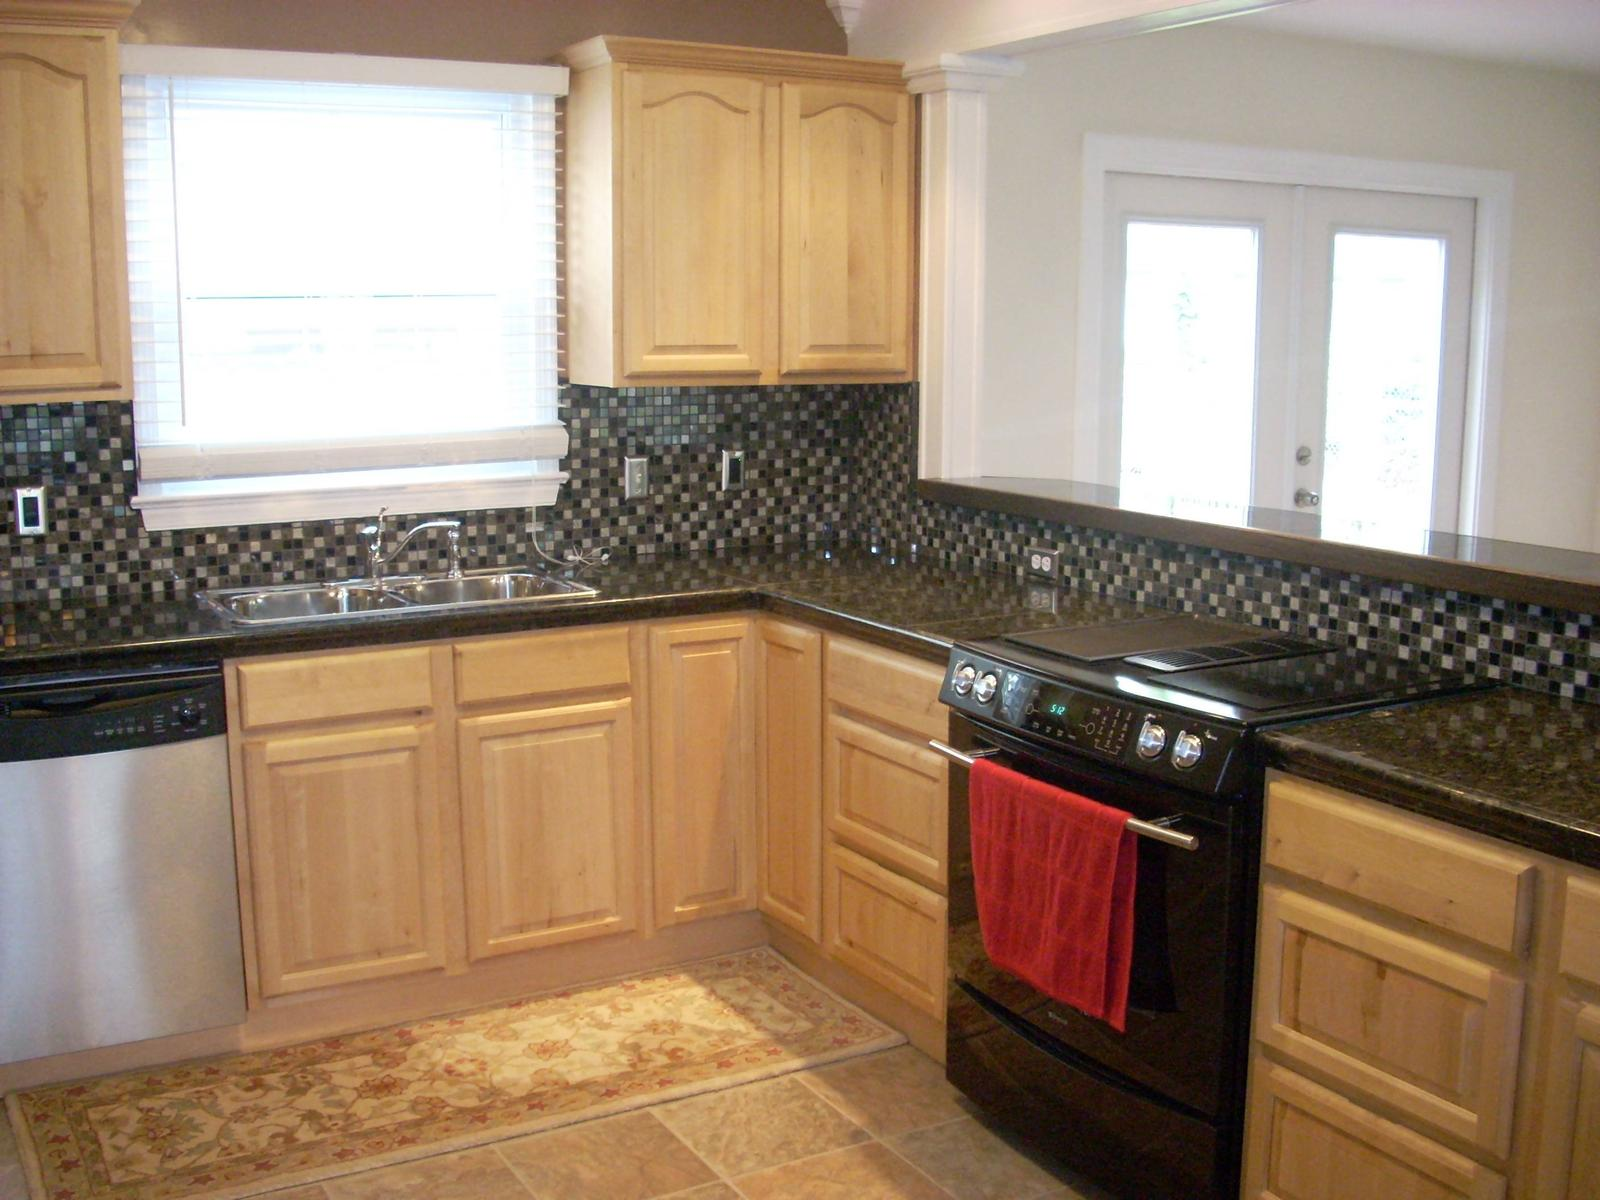 under counter lighting undermount under counter lightsdscn0355fulljpg lights how much countertops color installing